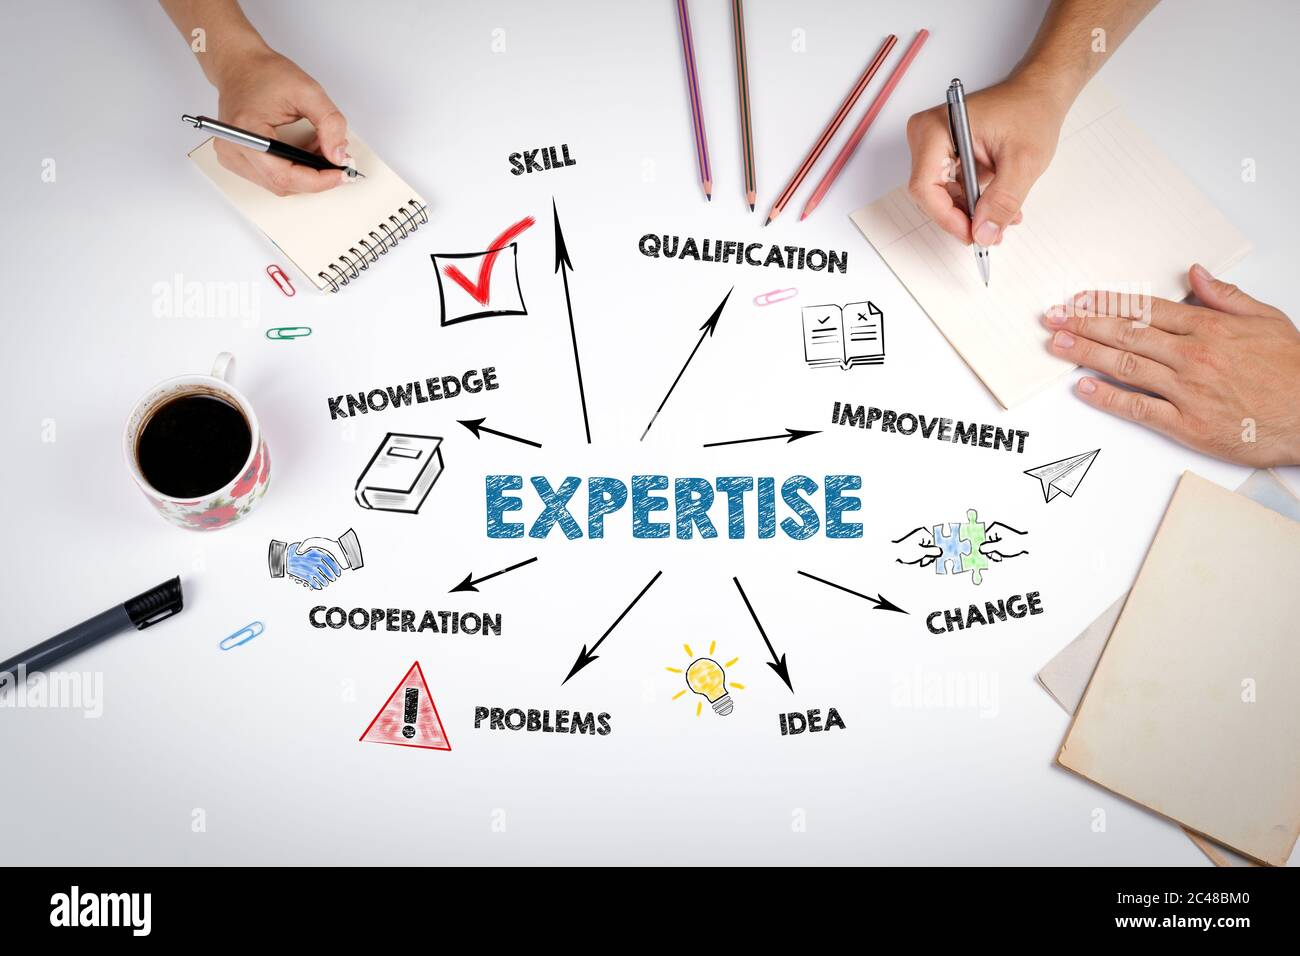 EXPERTISE. Knowledge, Qualification, Idea and Cooperation concept. Chart with keywords and icons. The meeting at the white office table Stock Photo